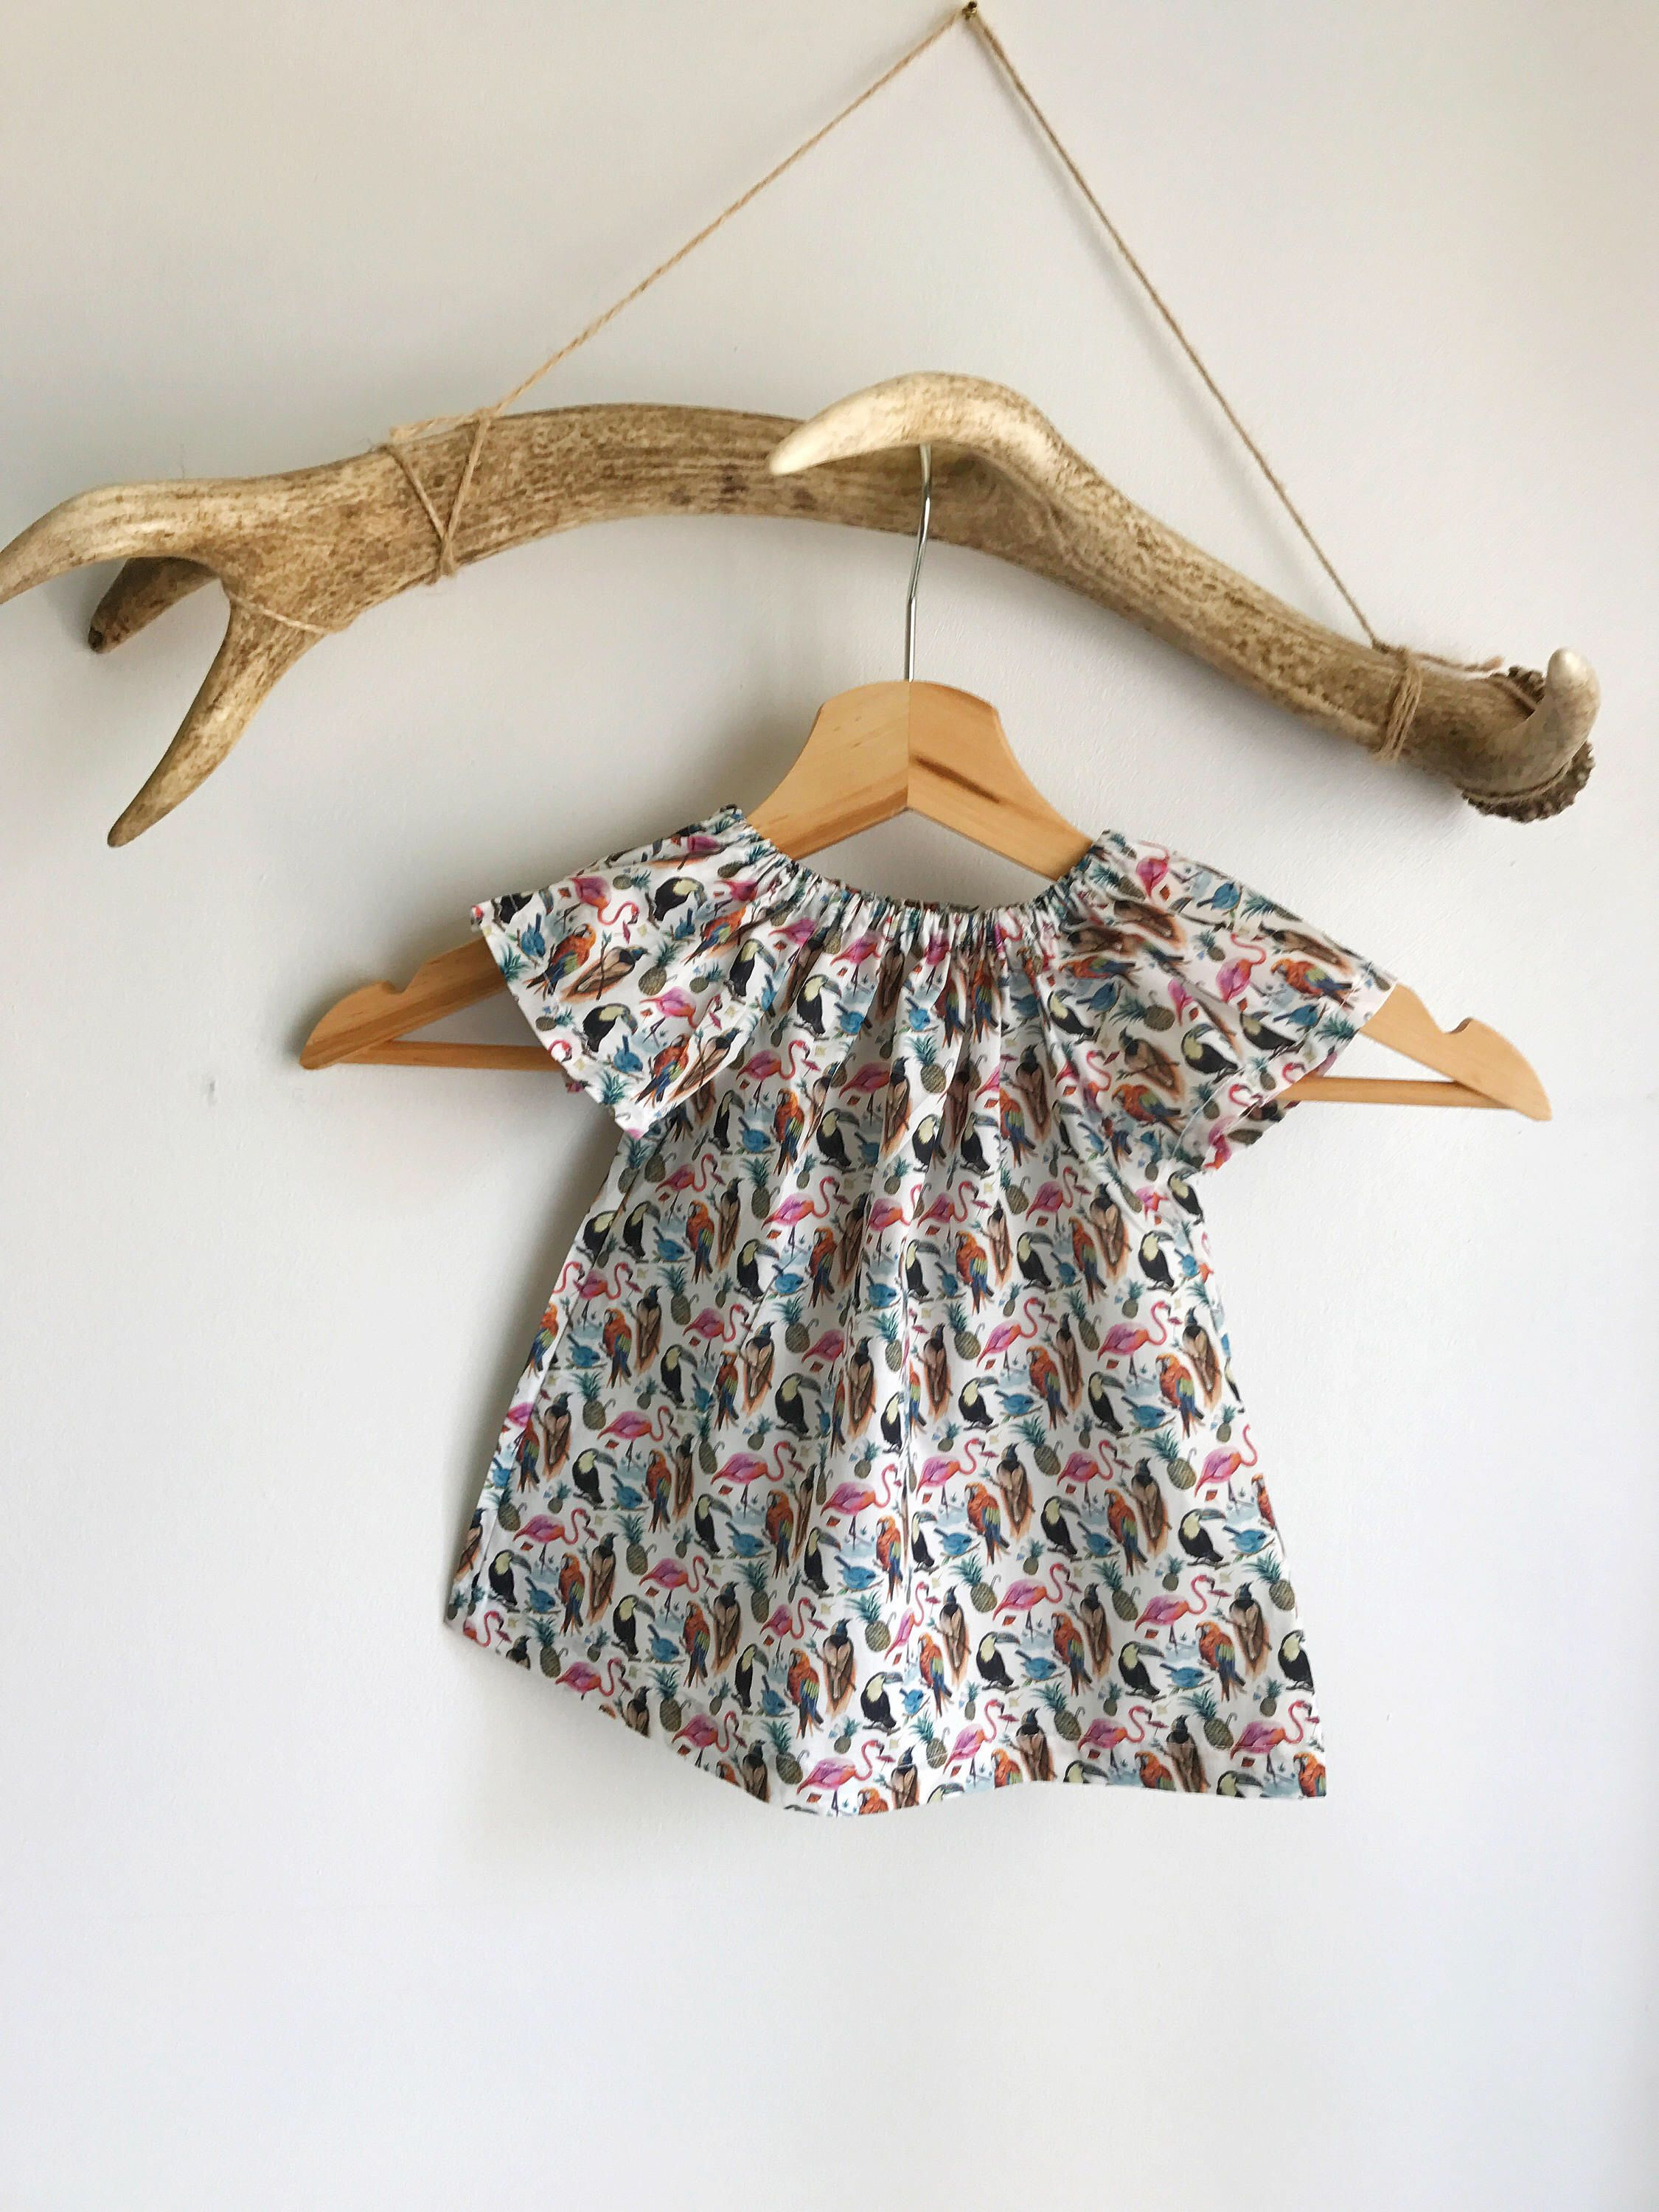 2d966d818e8a9 Baby girls summer dress   Liberty print baby dress   Parrot print baby dress    Peasant